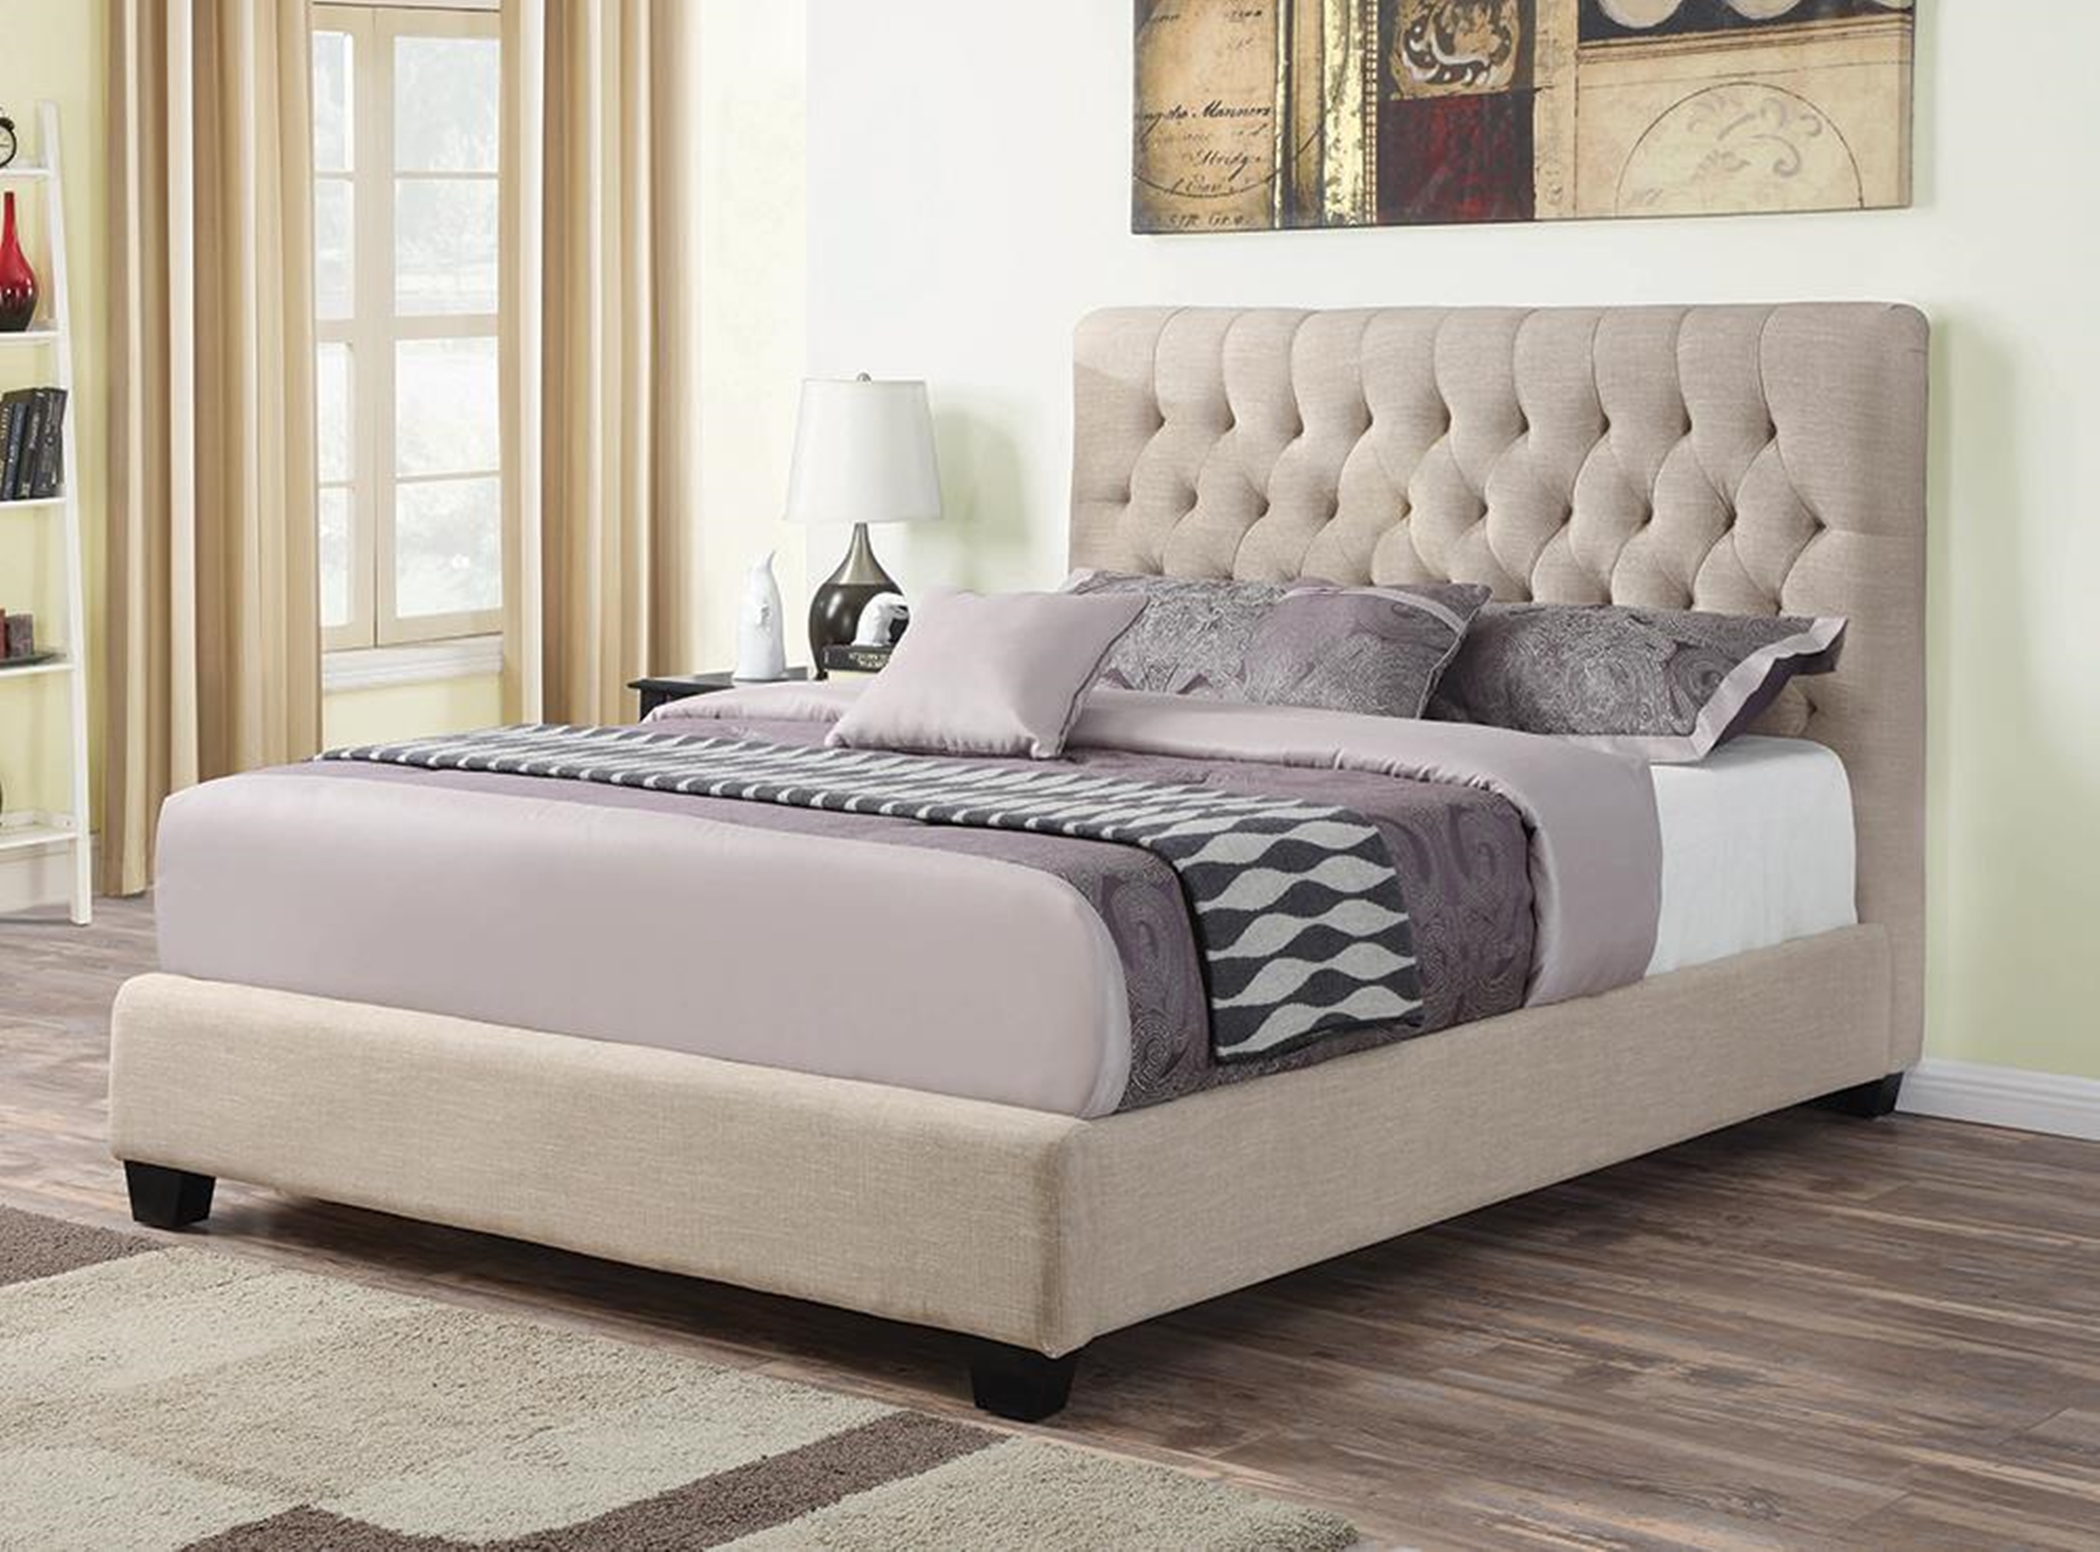 Chloe Oatmeal Upholstered Queen Bed